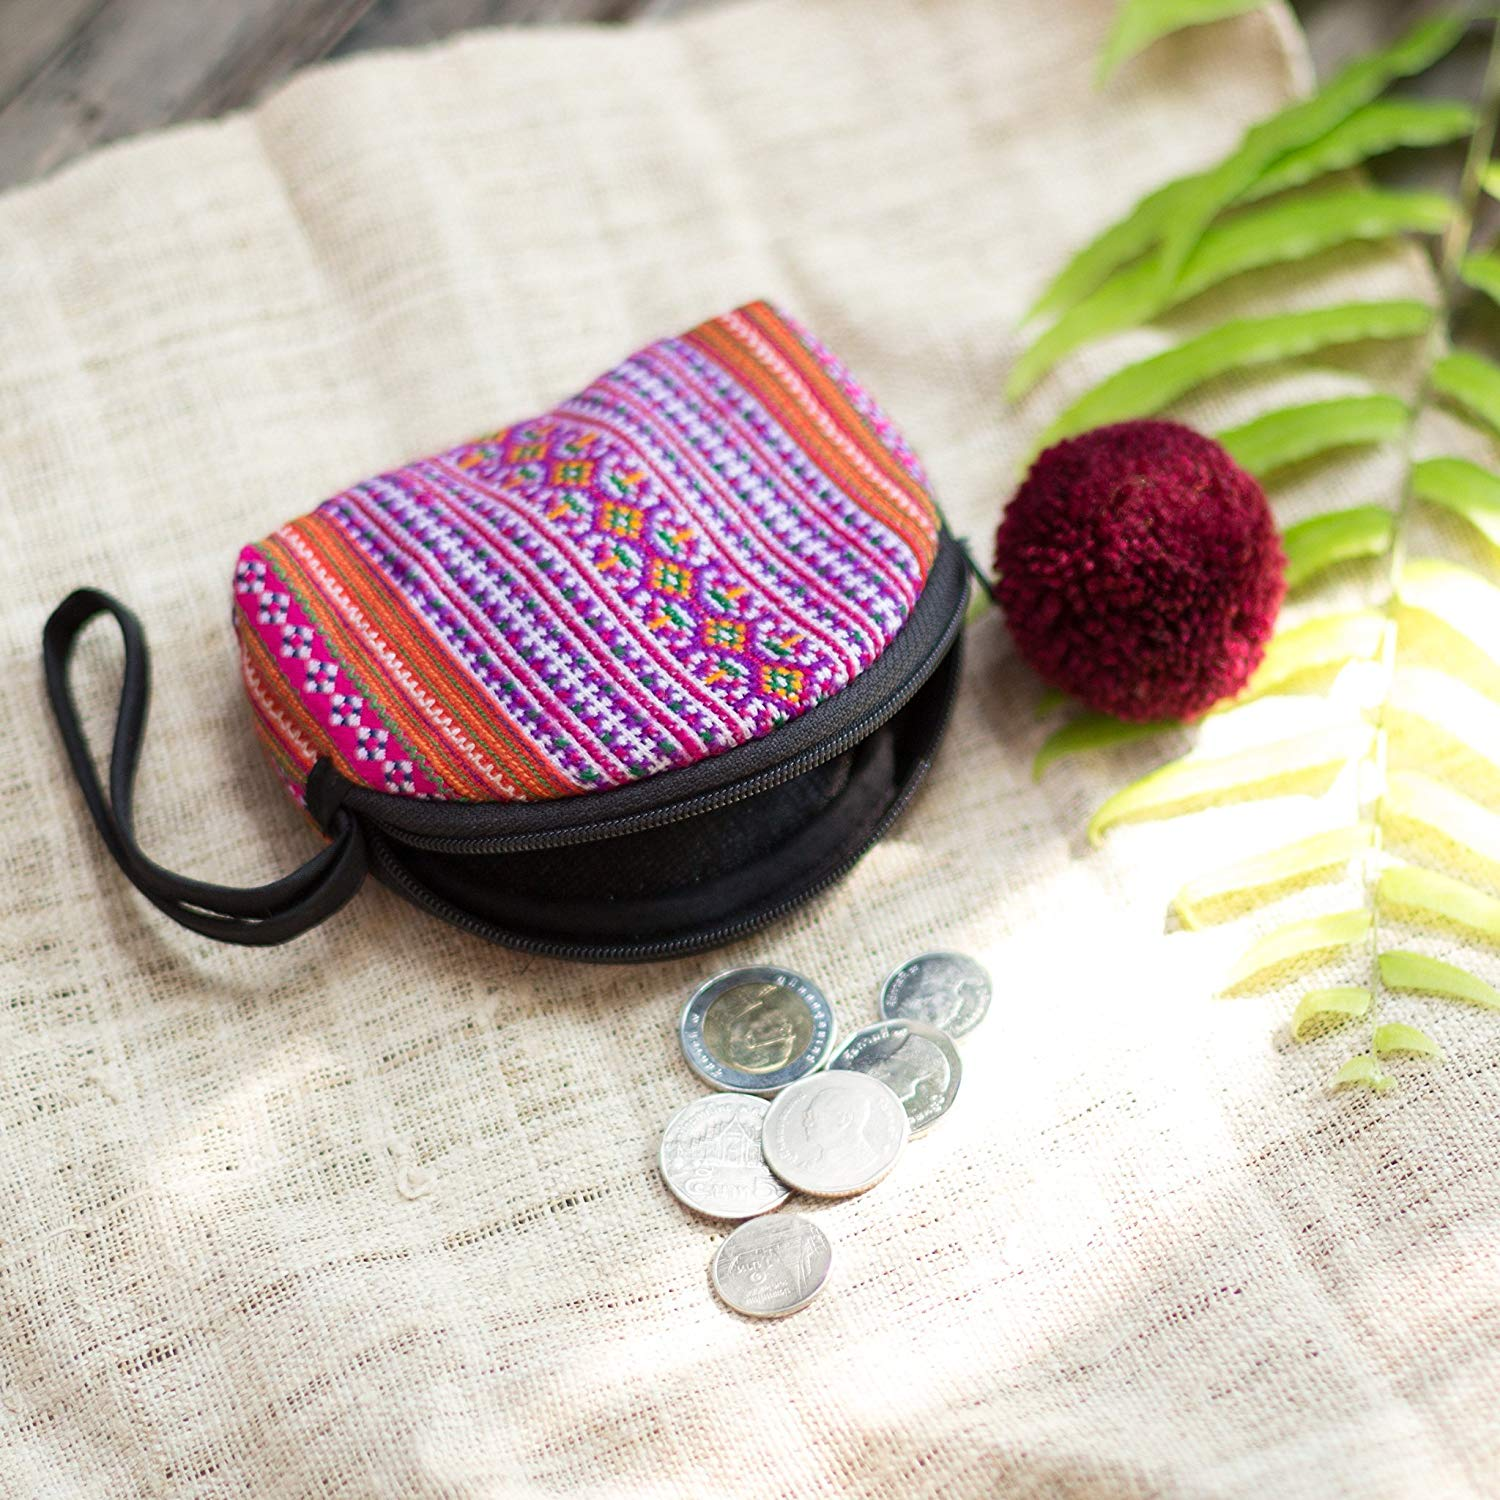 Changnoi Vintage Hmong Hill Tribe Embroidered Coin Purse for Women, Fair Trade Handcrafted Coin Pouch with Pom Pom Zip Pull, Gift Purse